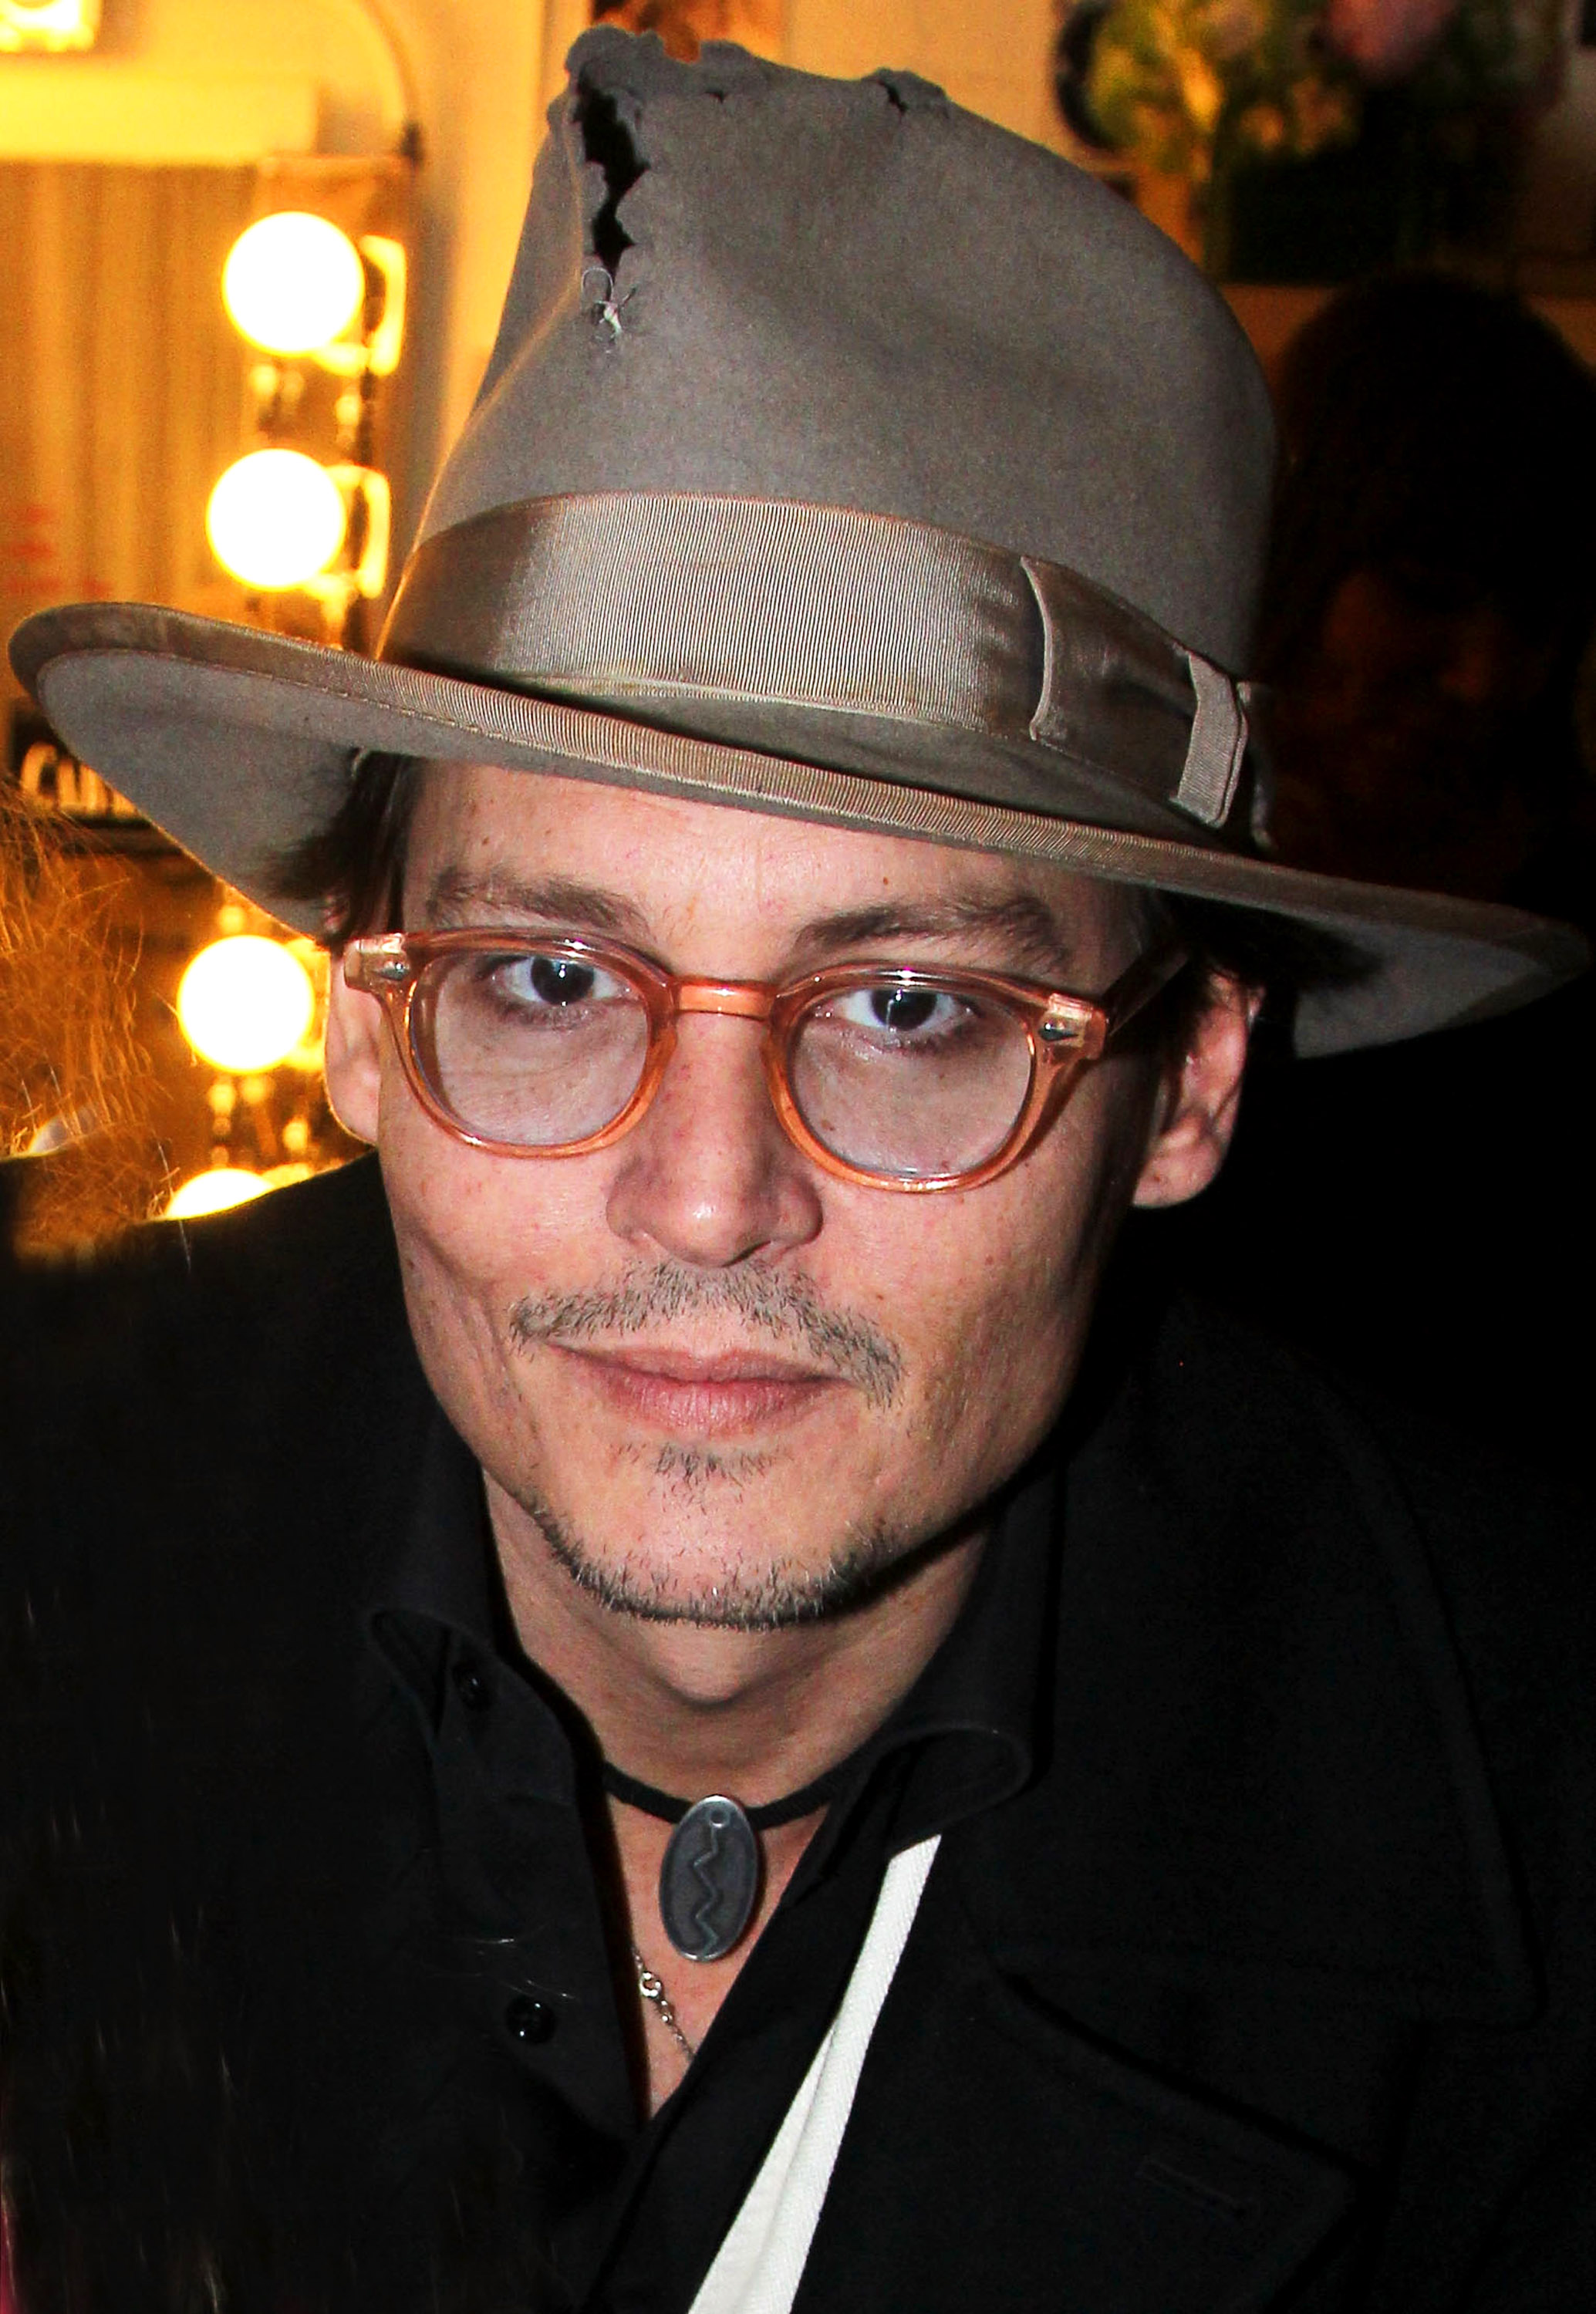 Johnny Depp poses backstage during the opening night of Cabaret on Broadway at Studio 54 on April 24, 2014, in New York City